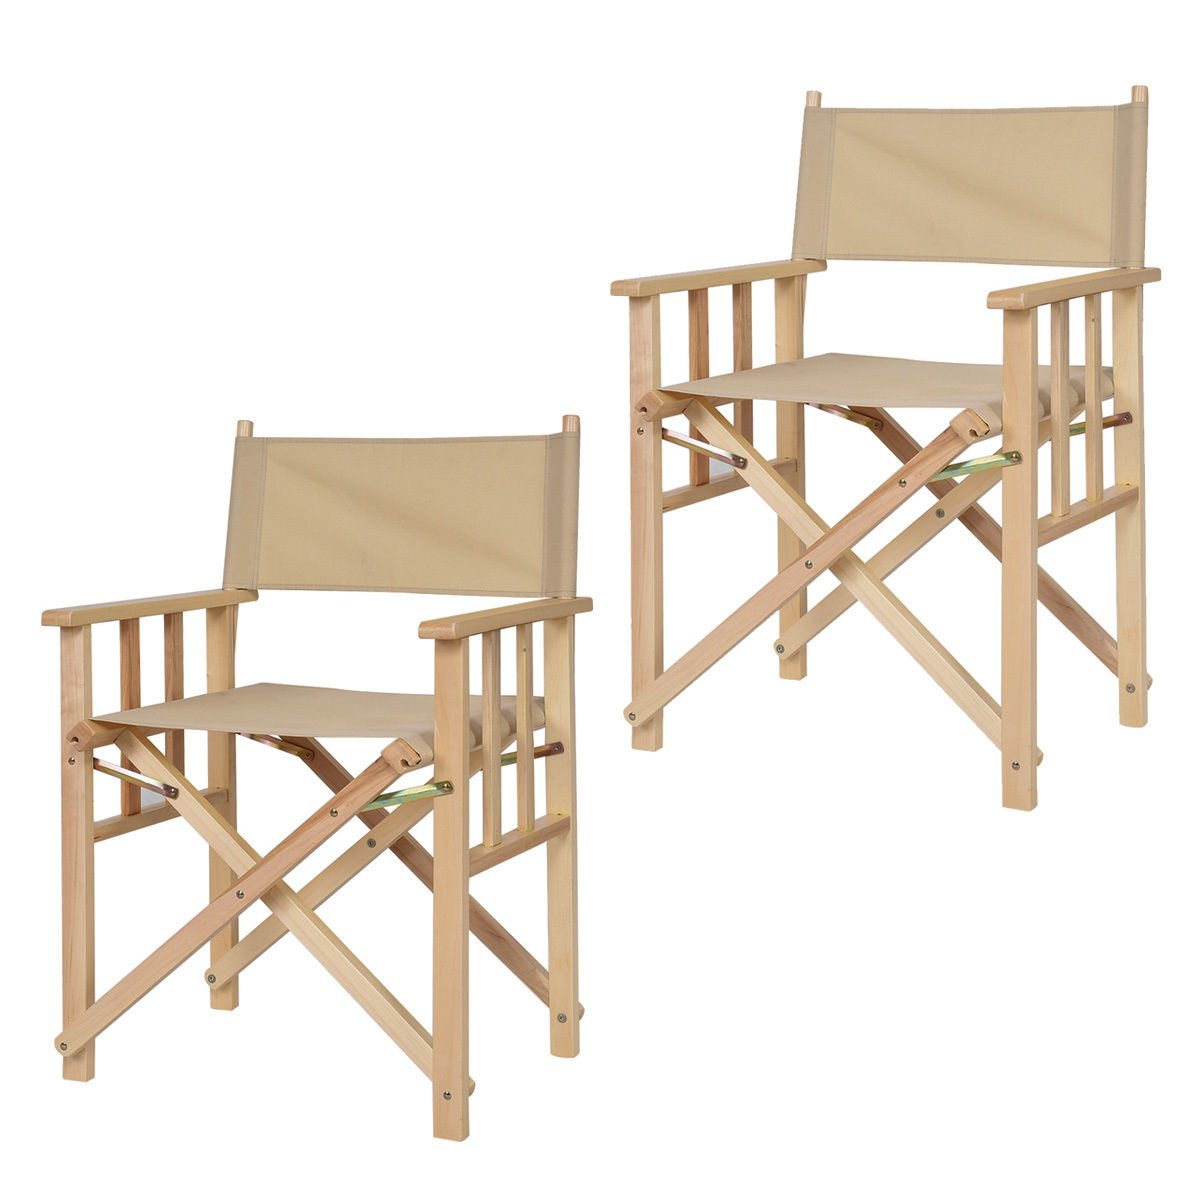 New MTN-G 34'' Set Of 2 Folding Makeup Director Chairs Wood Camping Fishing Beige